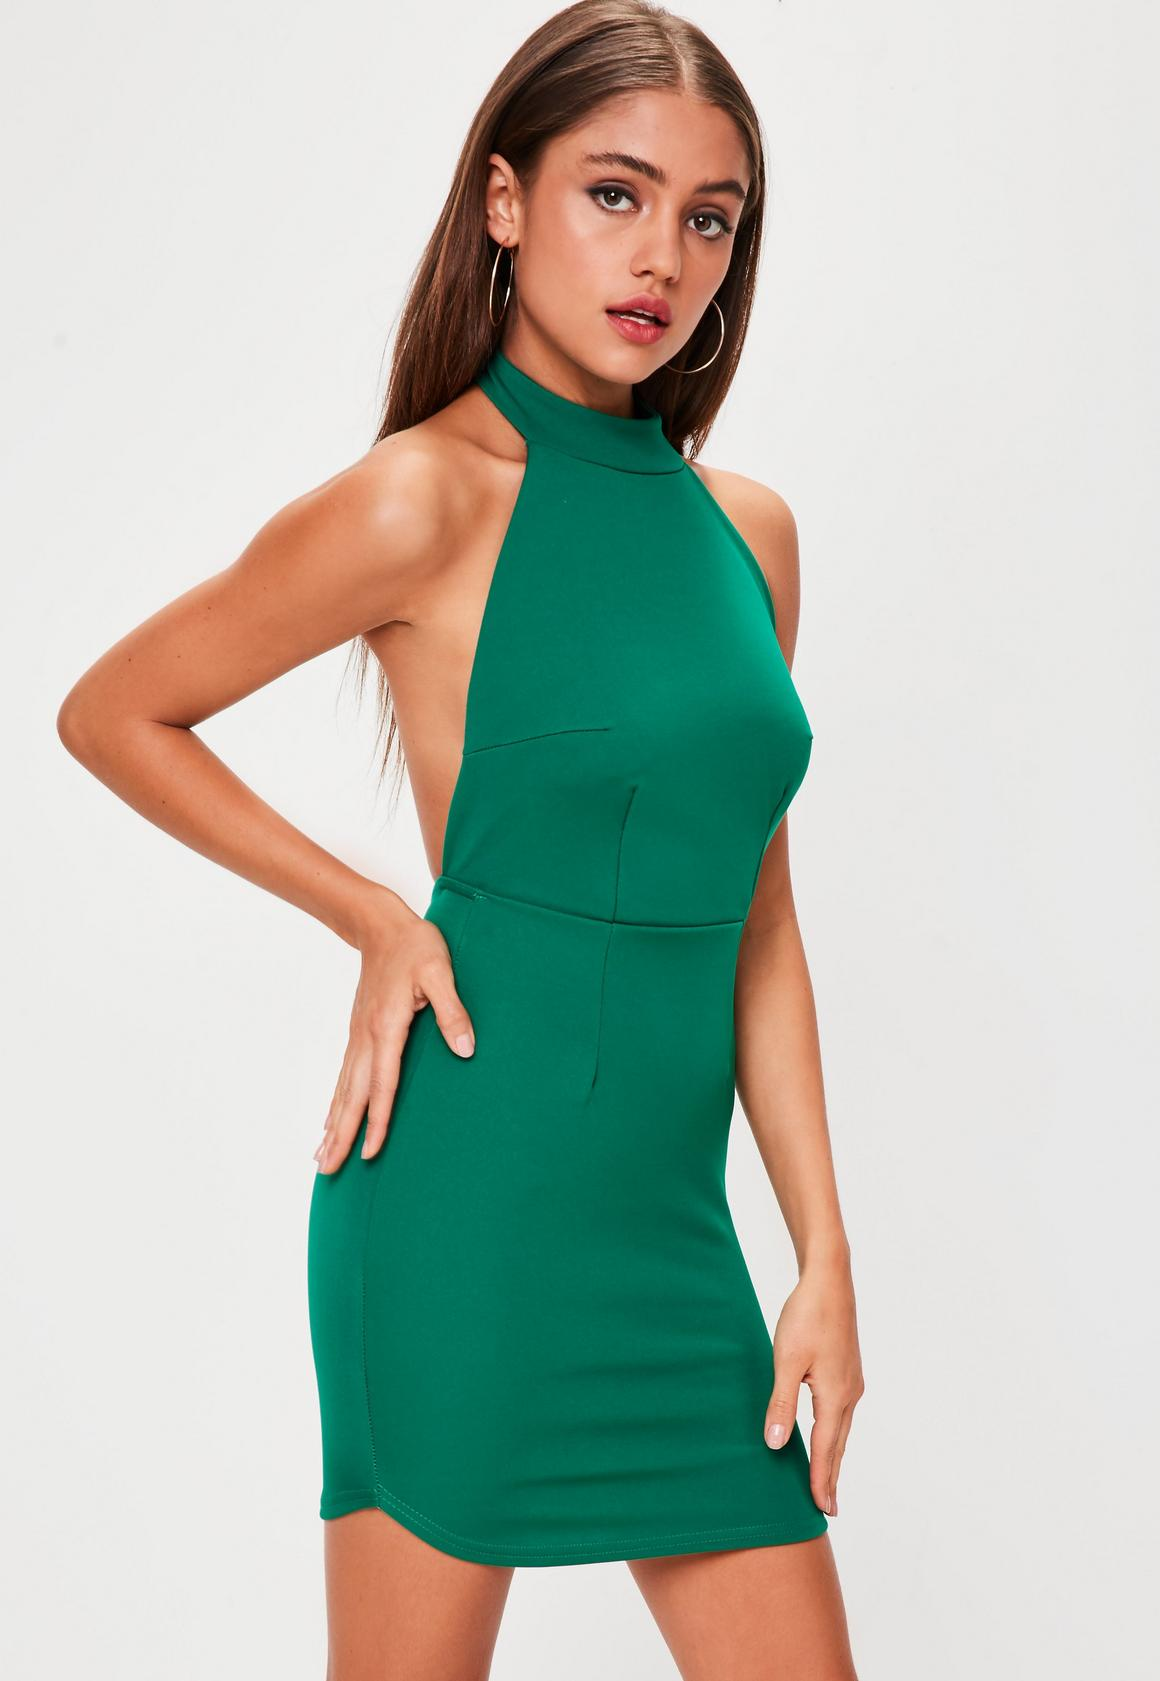 Green Halterneck Backless Bodycon Dress | Missguided